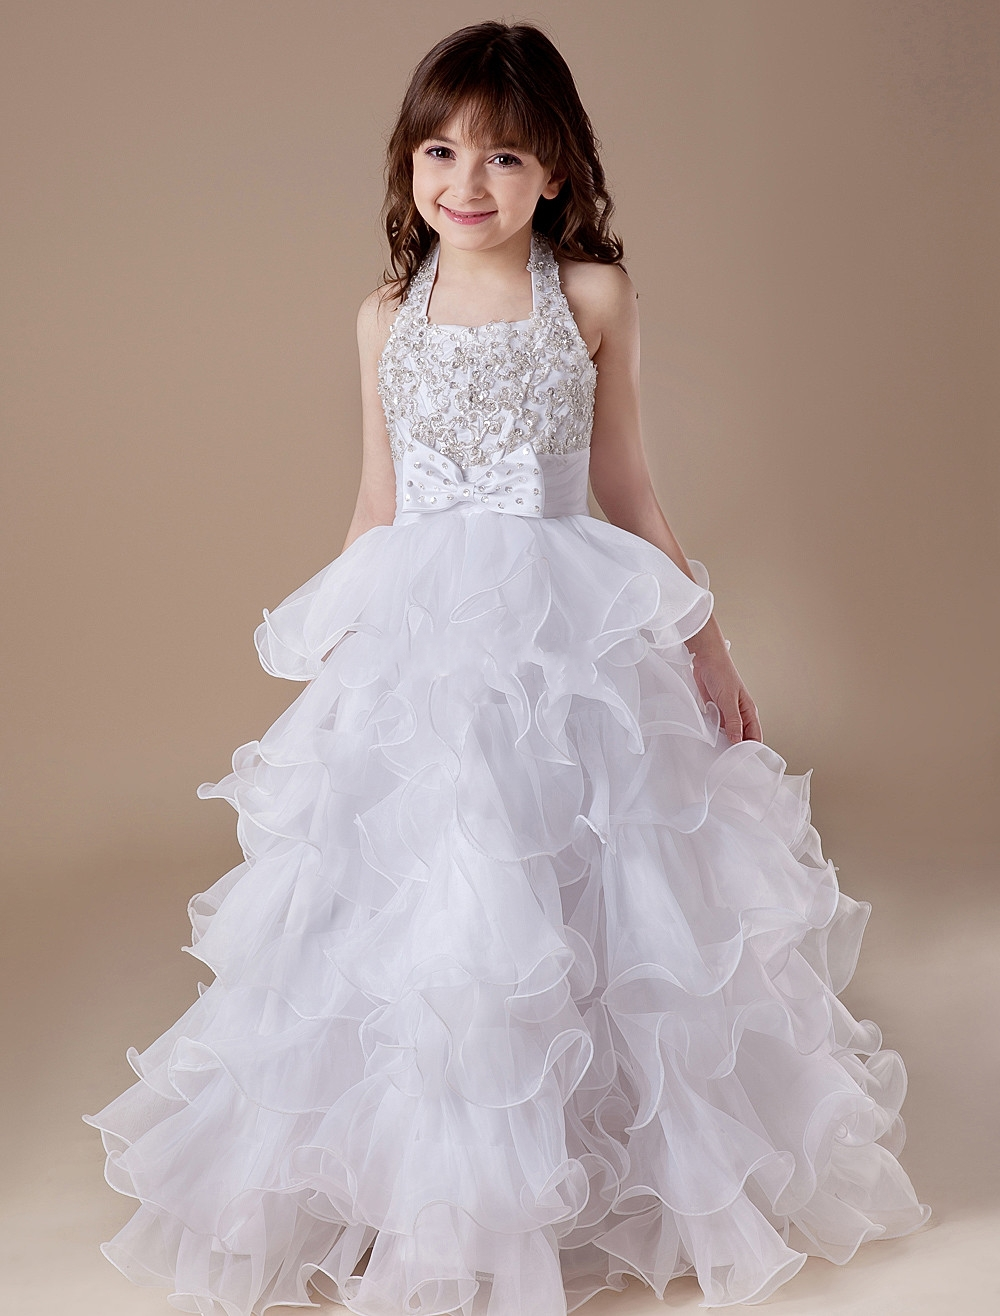 2015 New Cheap Flower Girls Pageant Dresses A Line Bow Flowers